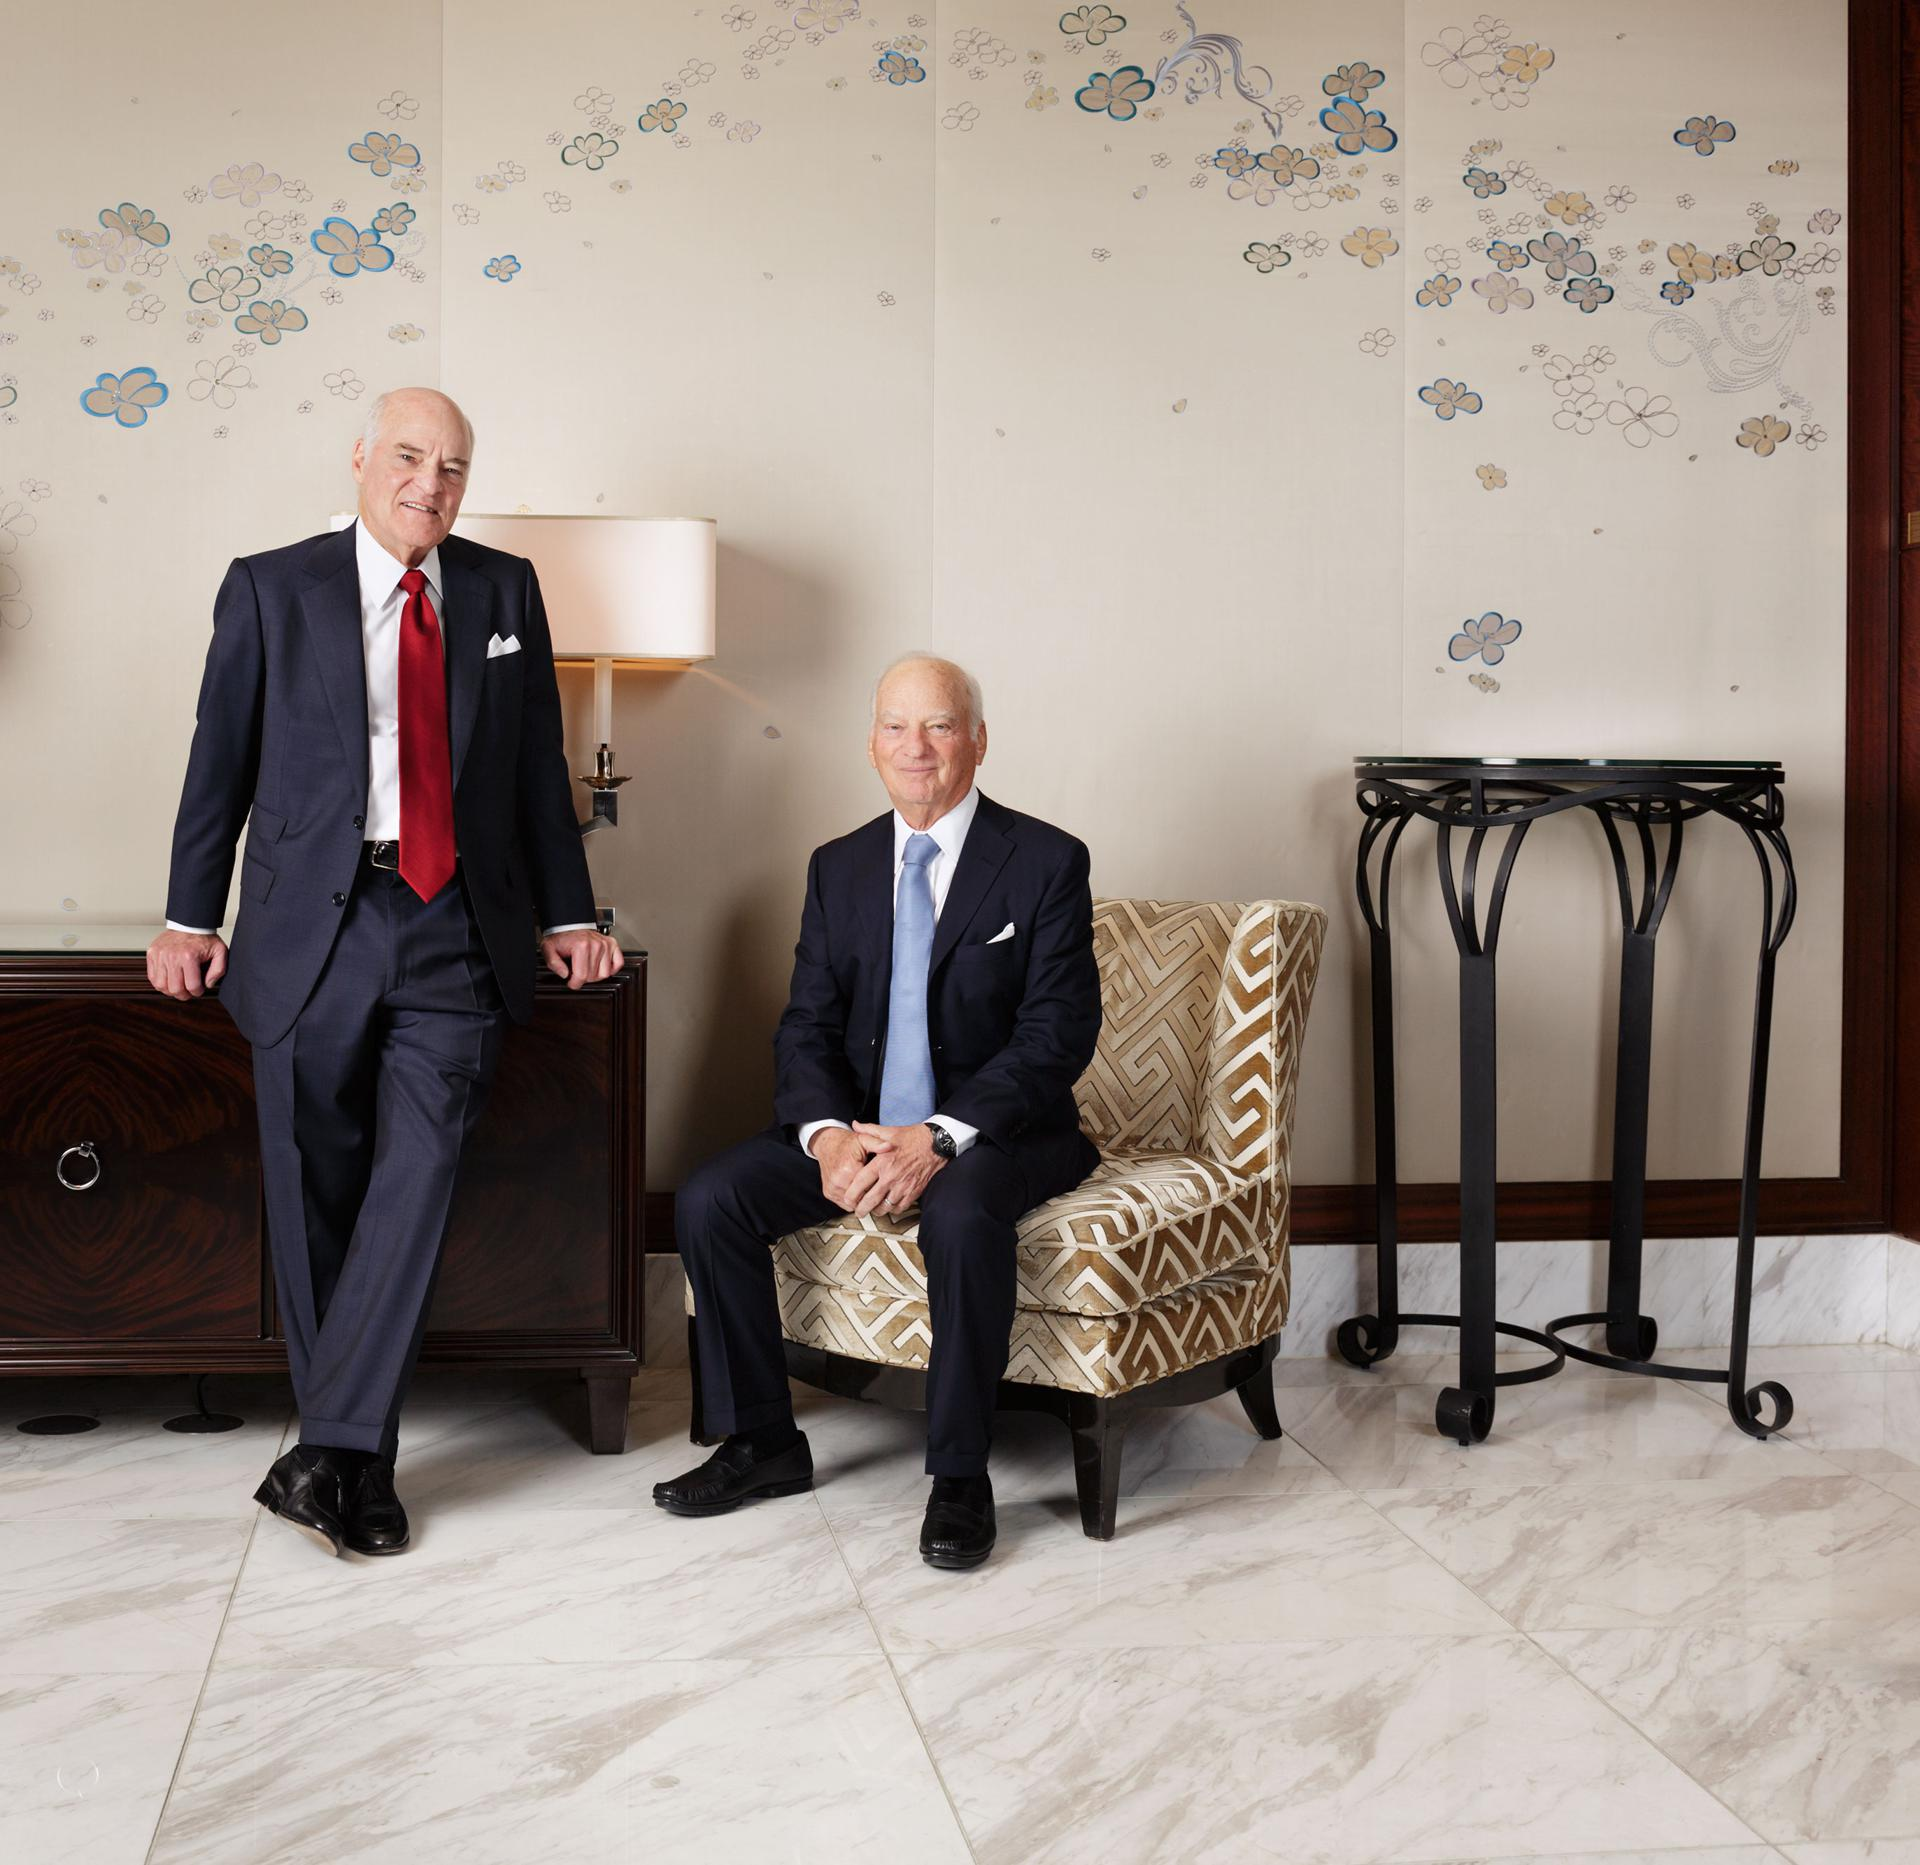 hero-Henry-Kravis-and-George-Roberts-by-Ko-Sasaki-for-Forbes_182